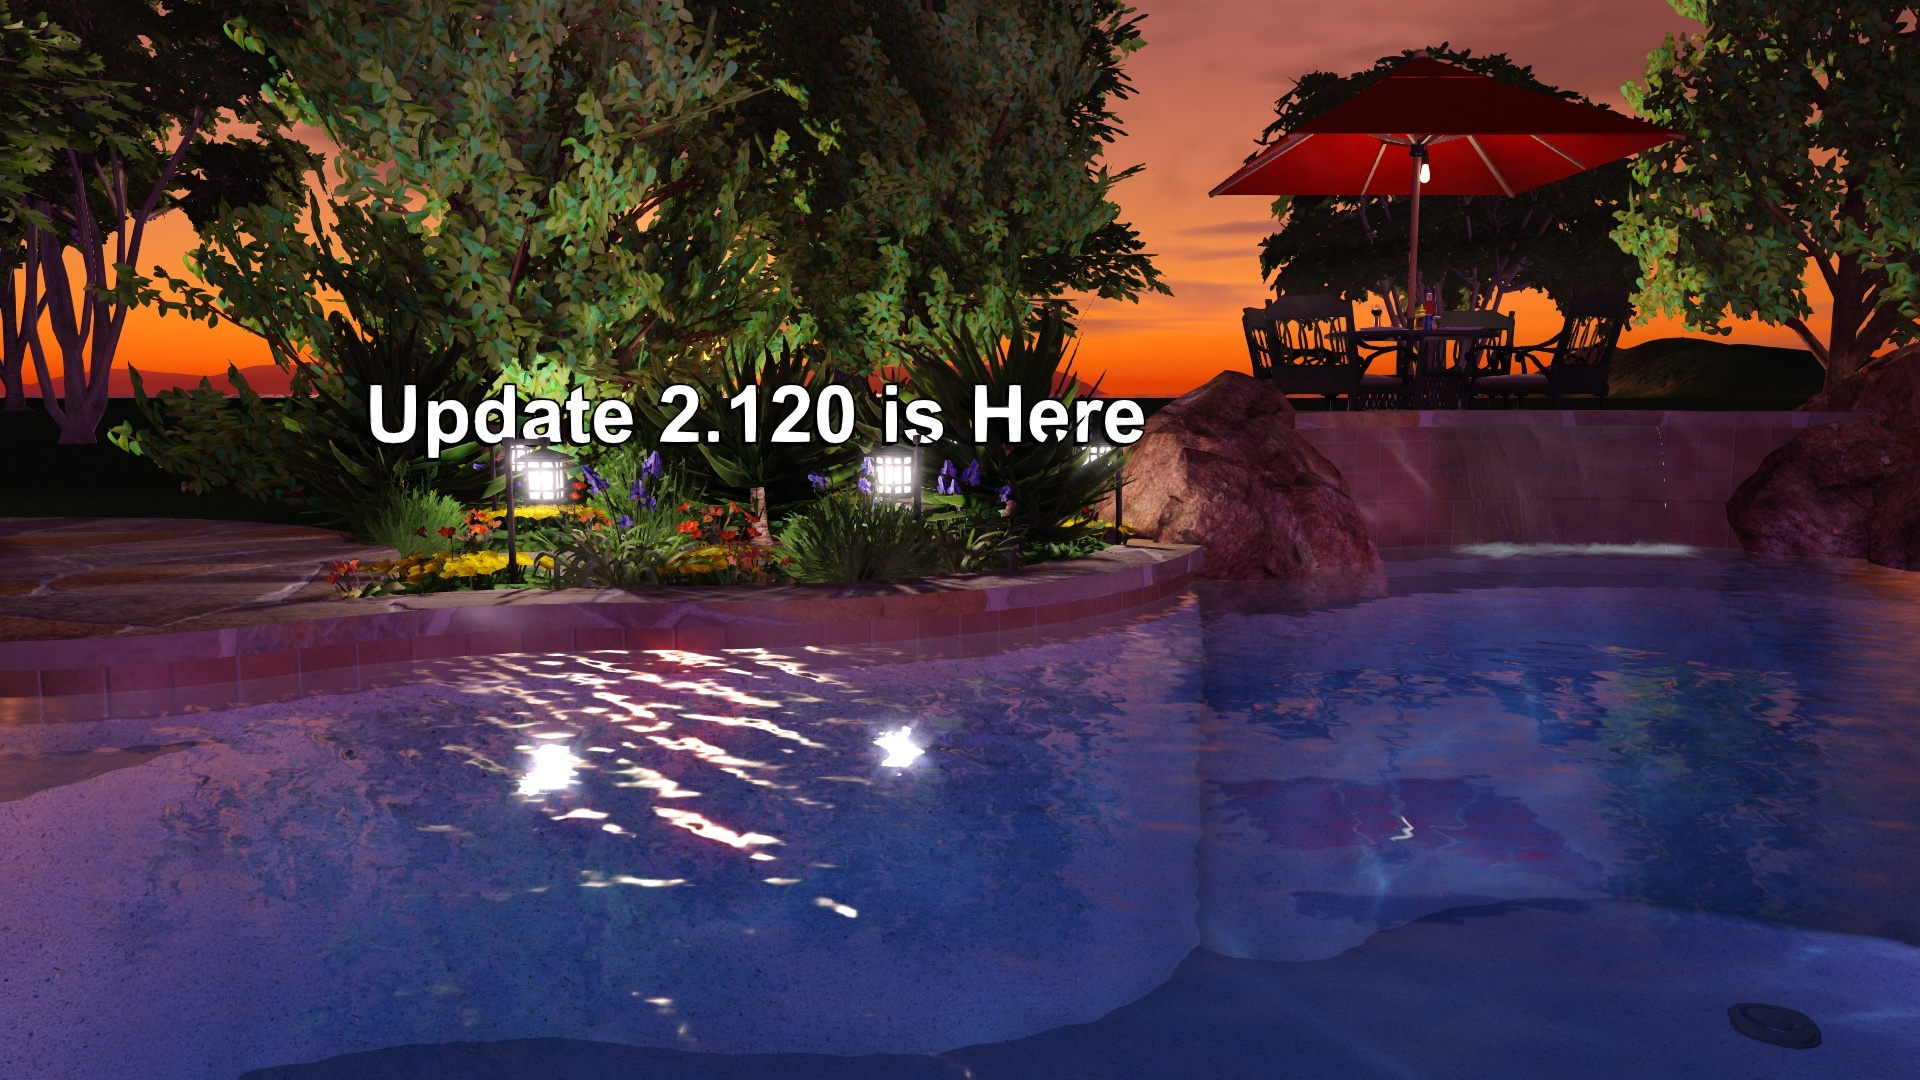 The Best Pool and Landscape Design Software is Even Better: Update 2.120 [Video]